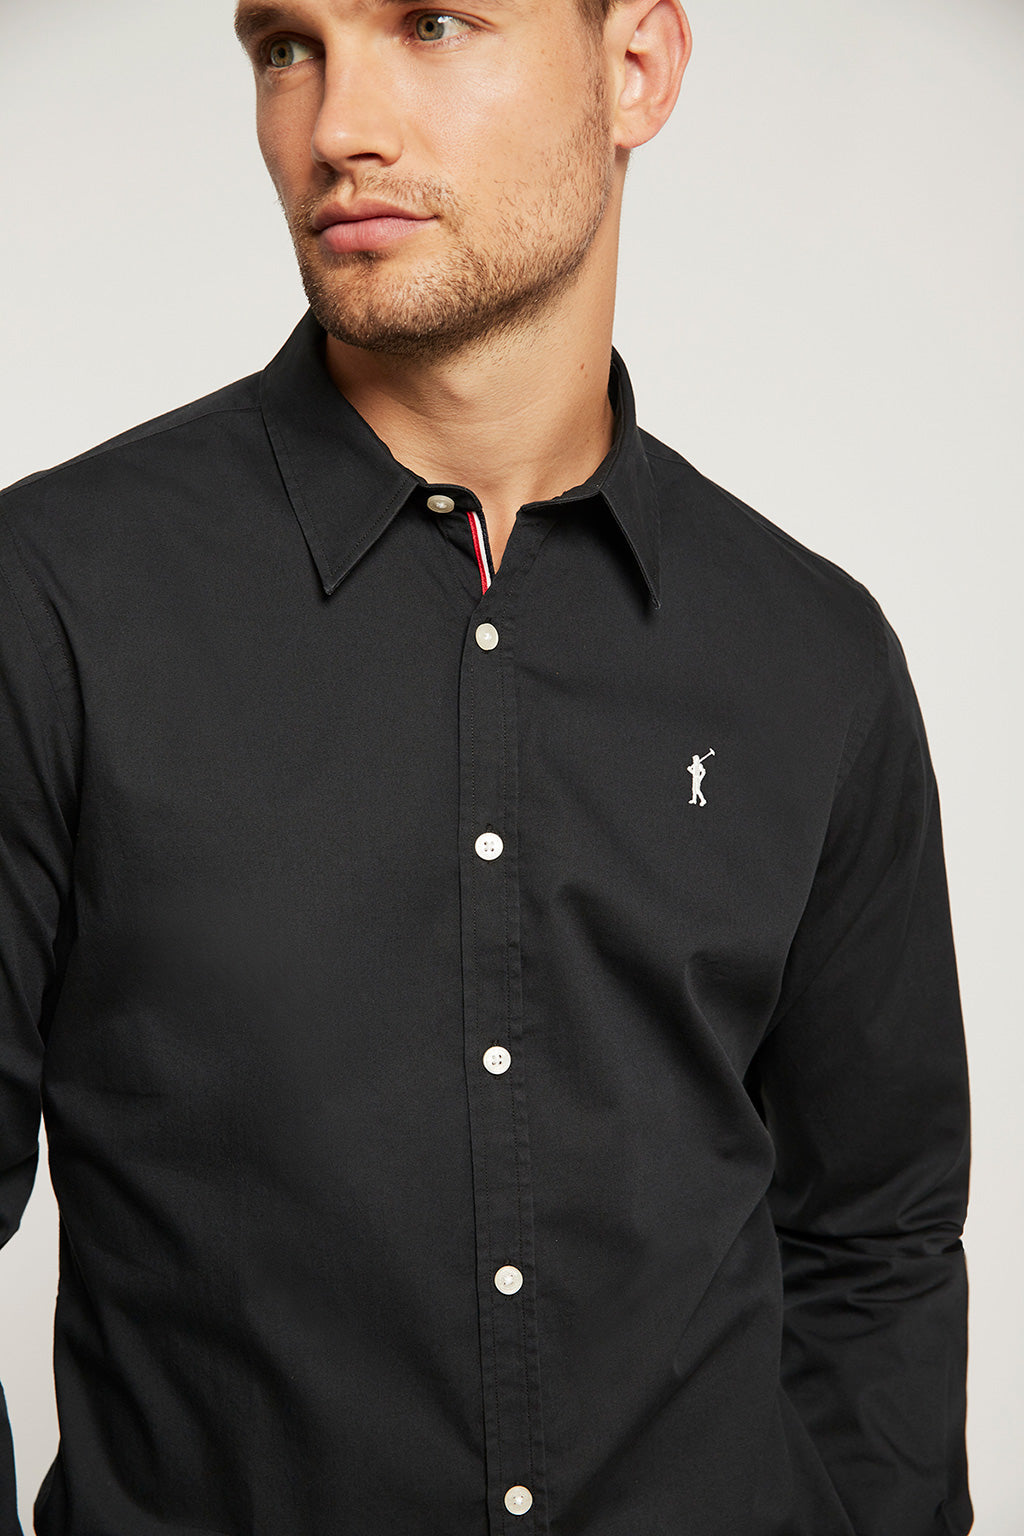 Camisa slim fit negra con logo bordado